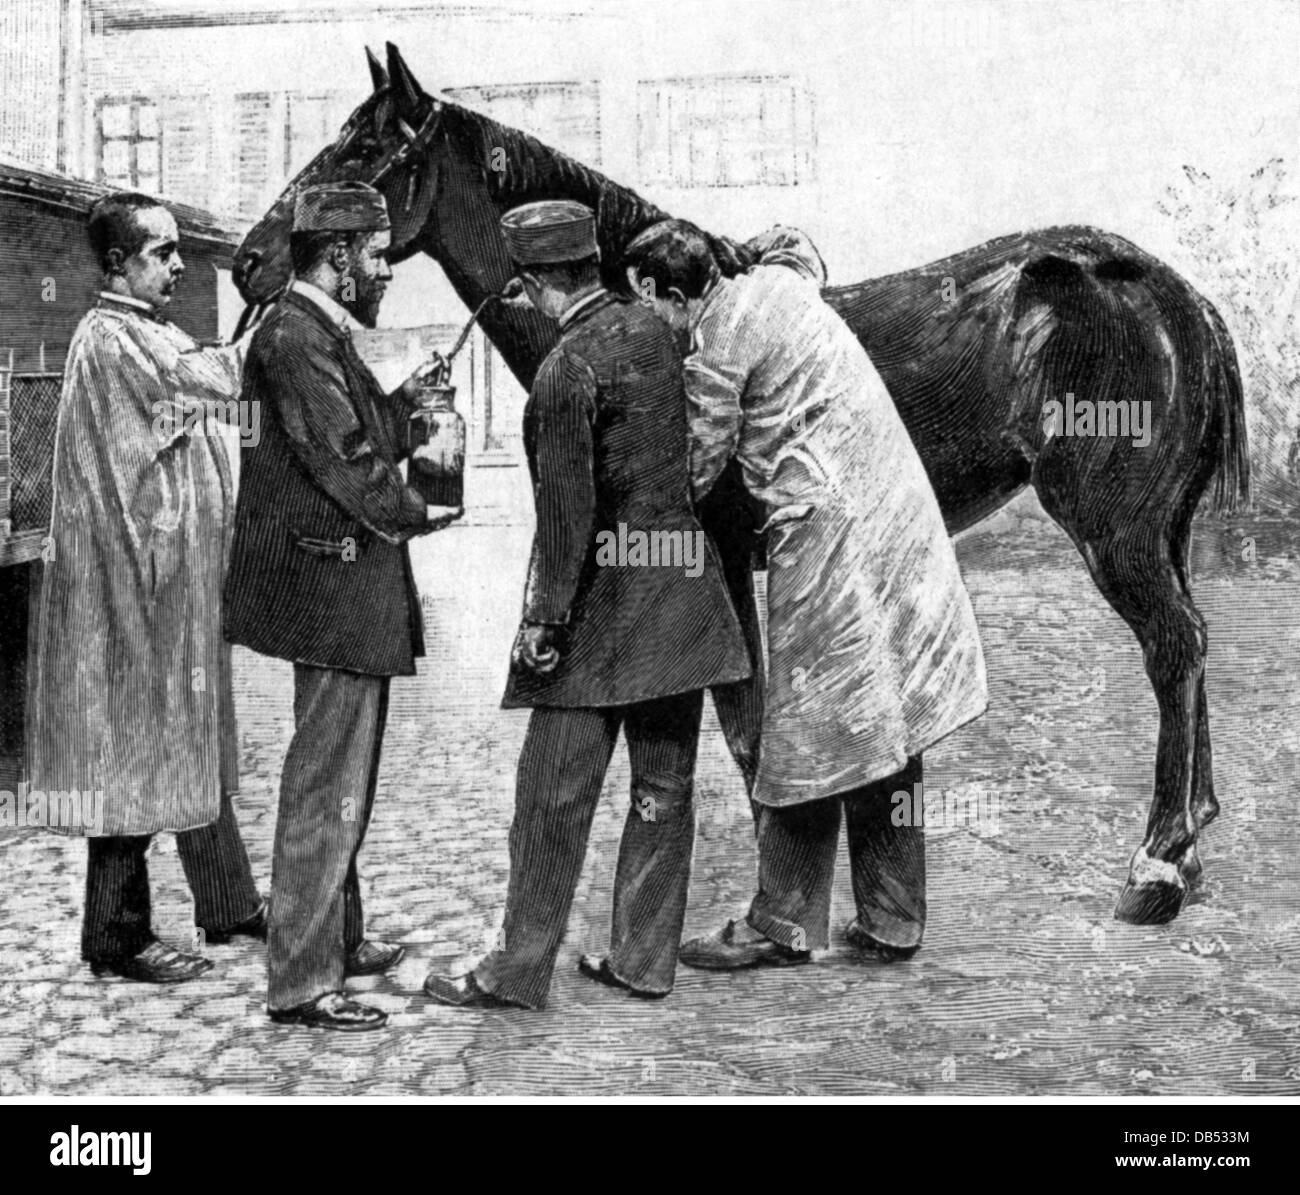 Roux, Pierre Paul Emile, 17.12.1853 - 17.12.1933, French physician (bacteriologist), full length, during the preparation - Stock Image